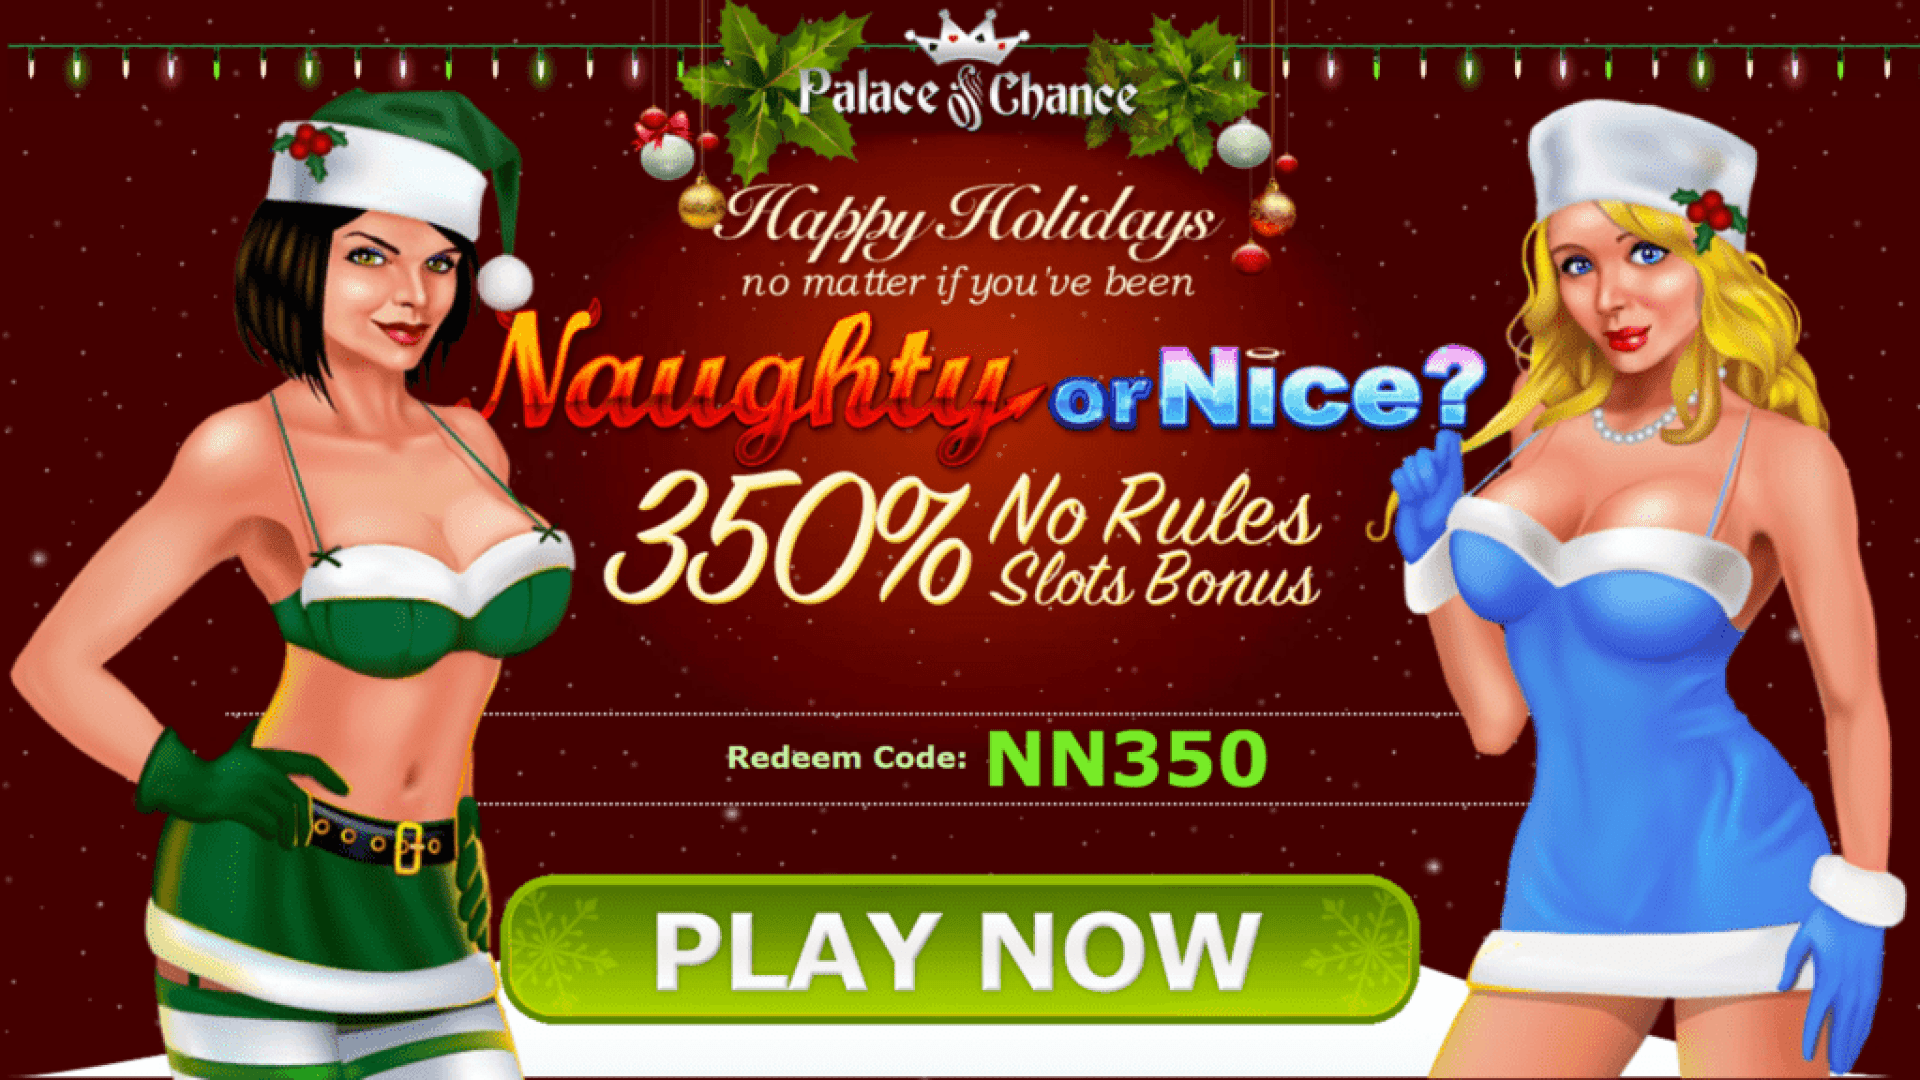 Palace of Chance Happy Holidays 350% Match No Rules Bonus Special Deal RTG Naughty or Nice